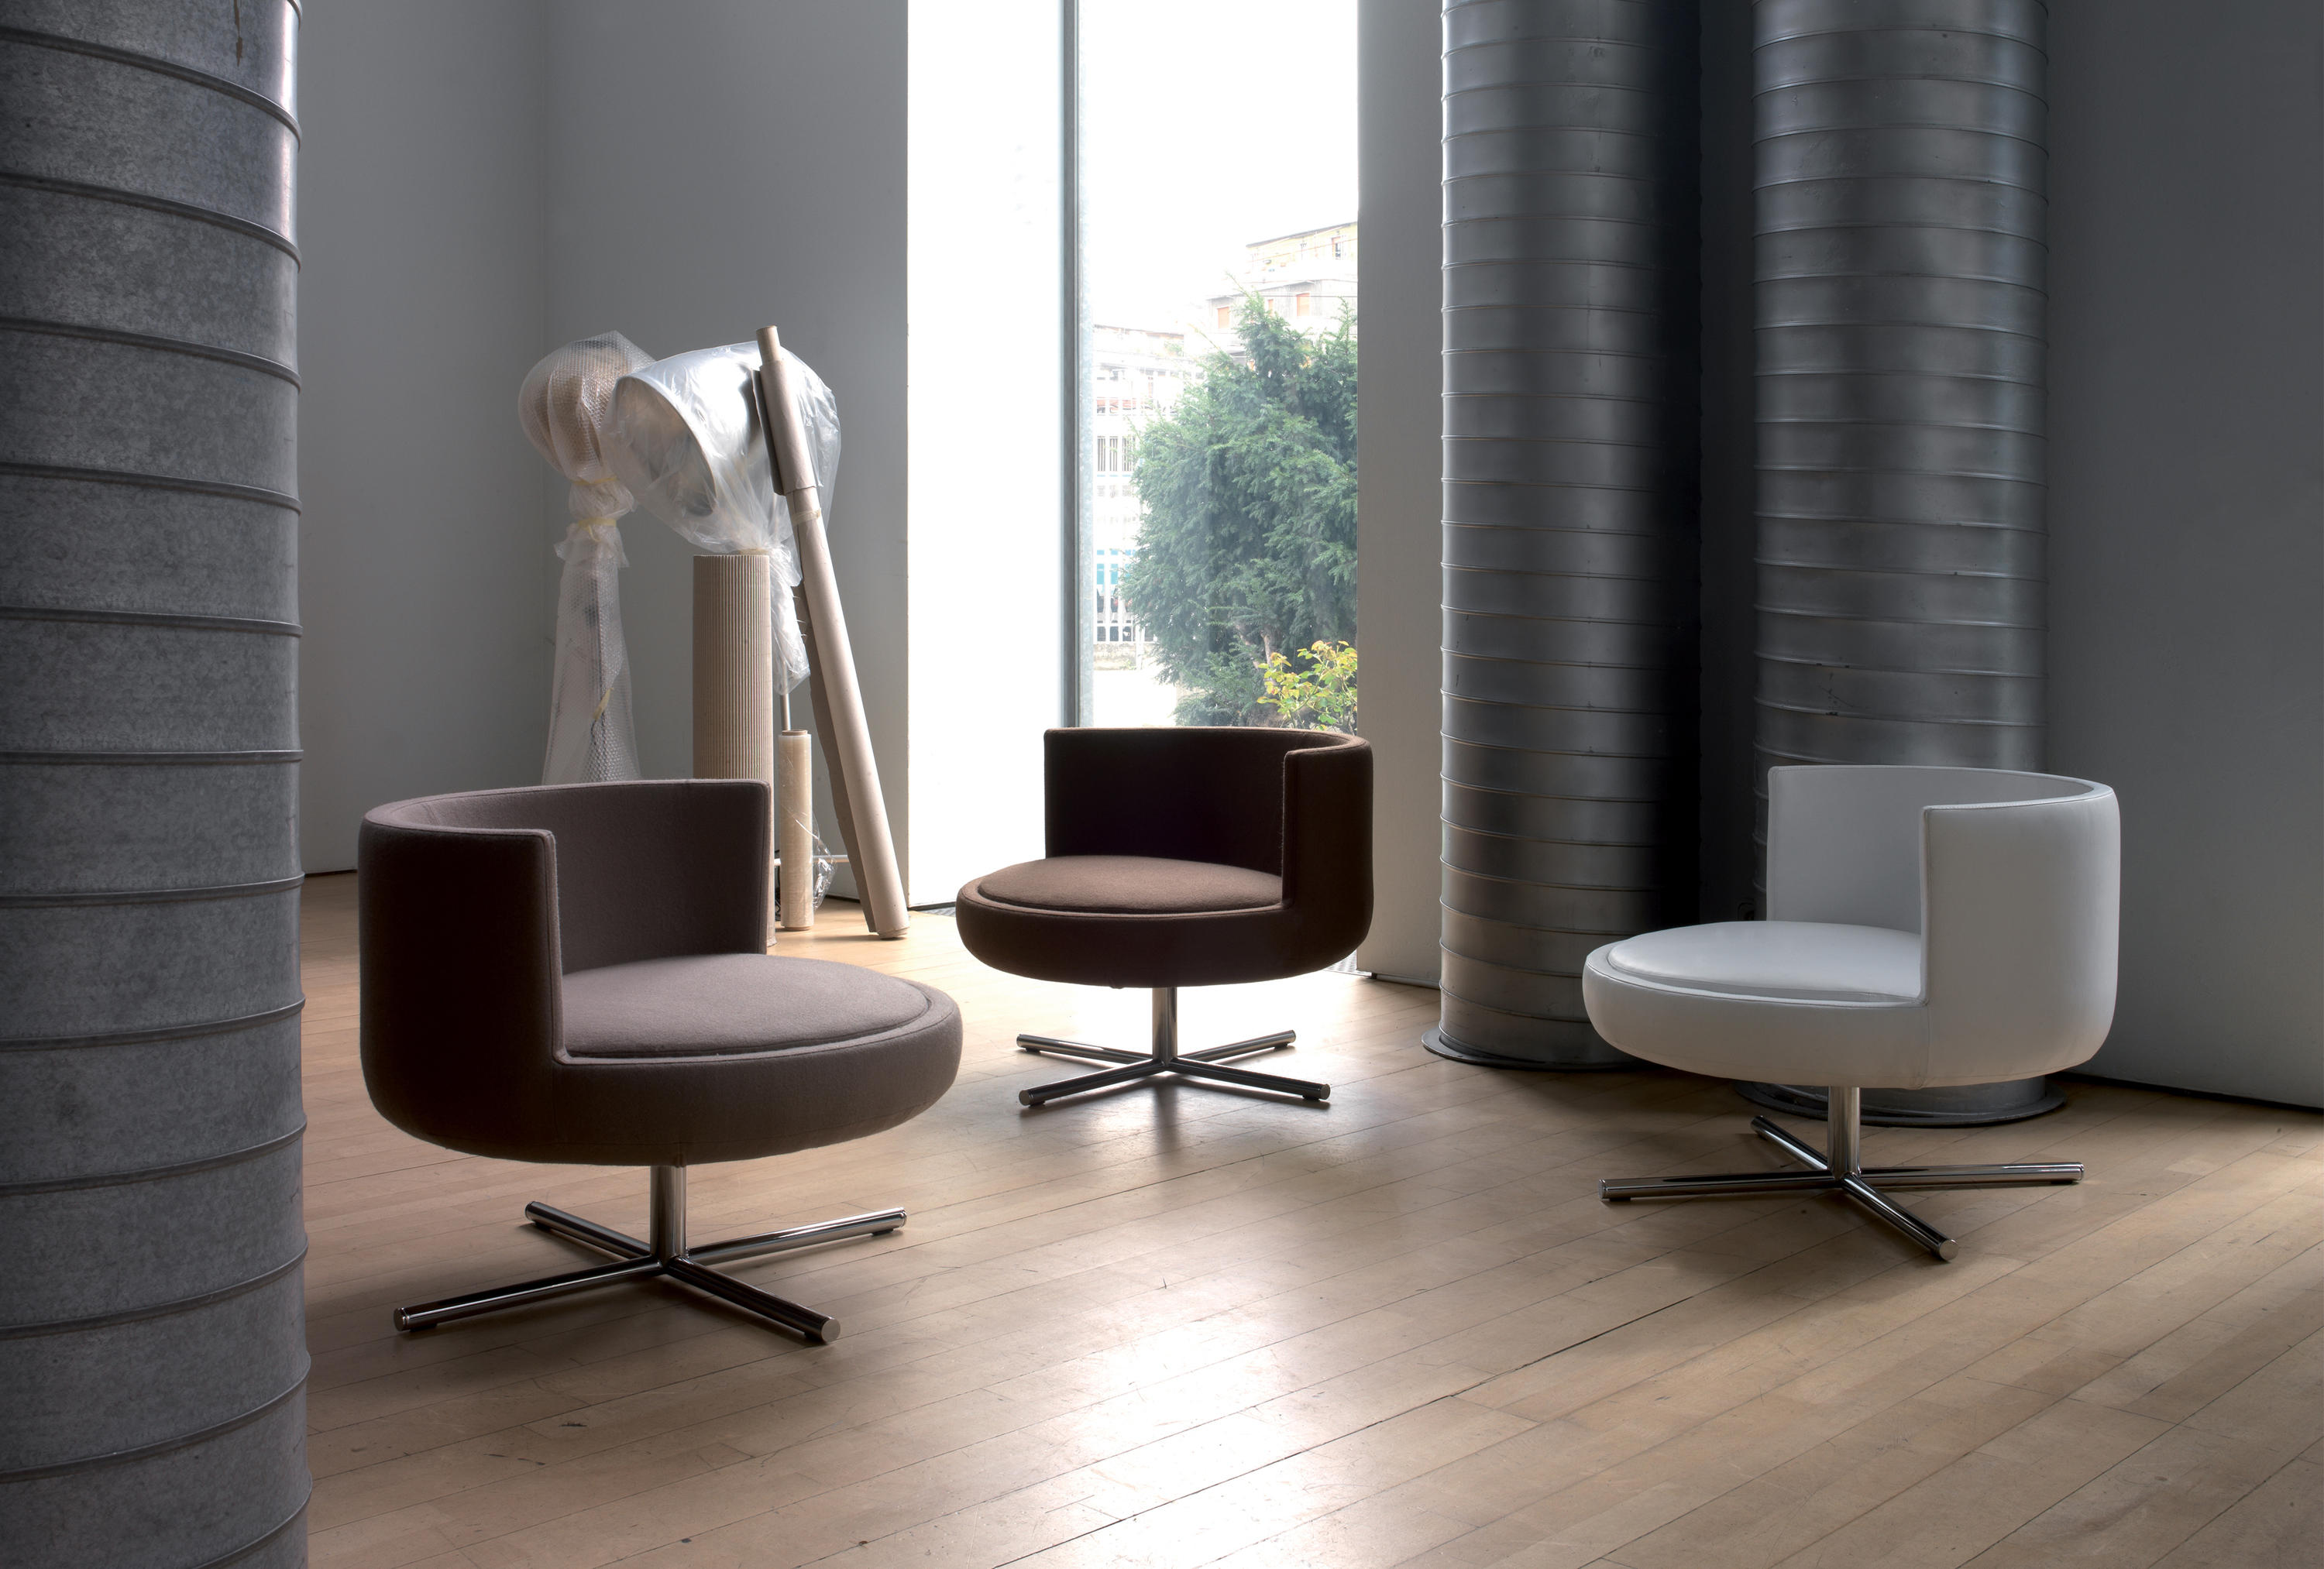 Round Armchairs From B Amp T Design Architonic